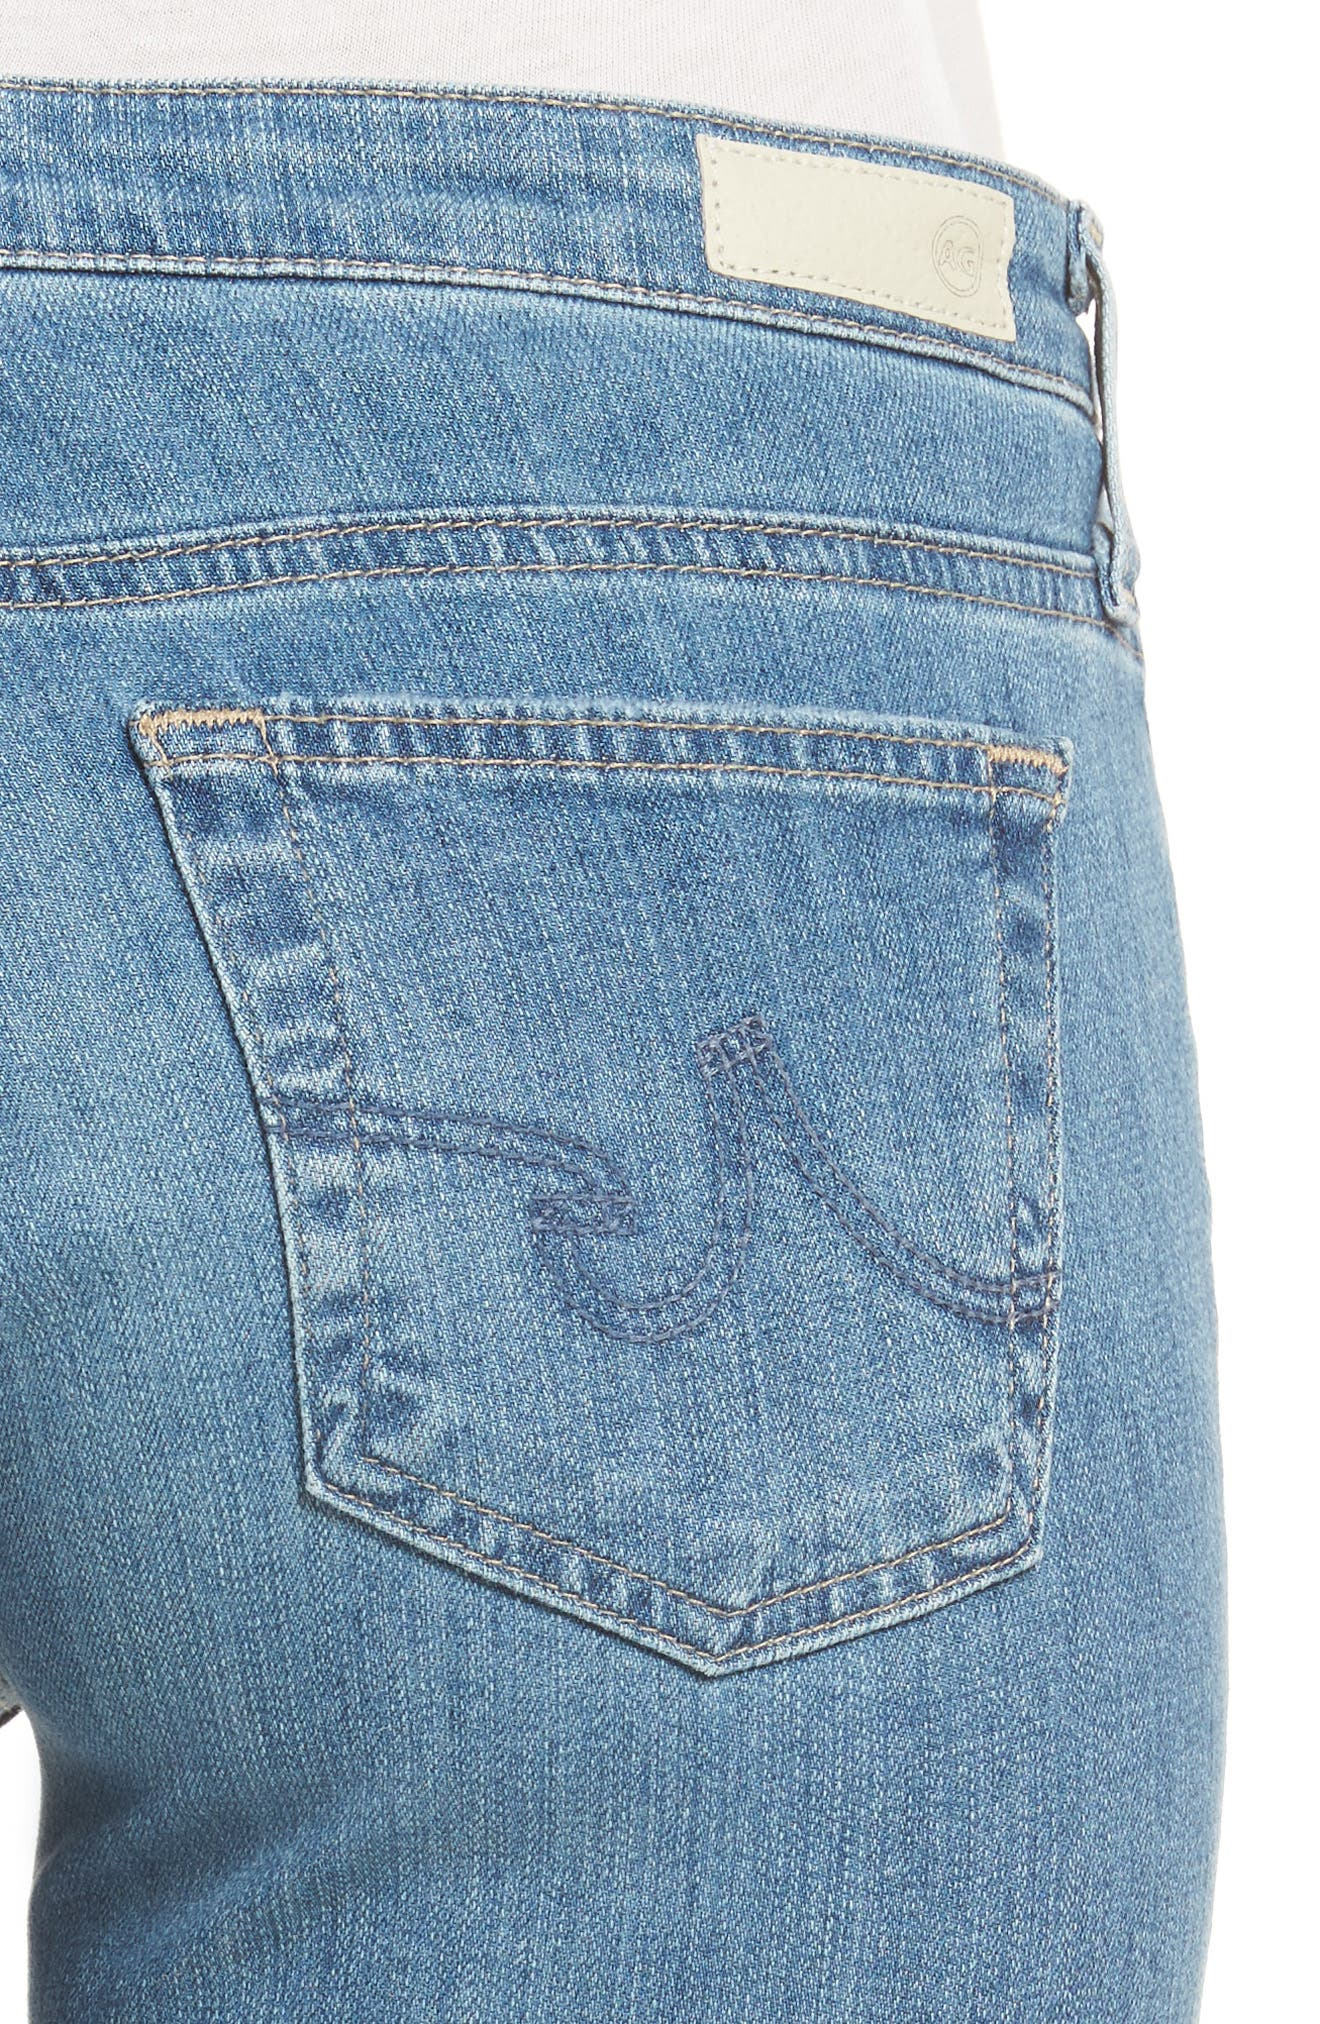 'Stilt' Distressed Roll Cuff Cigarette Jeans,                             Alternate thumbnail 4, color,                             403